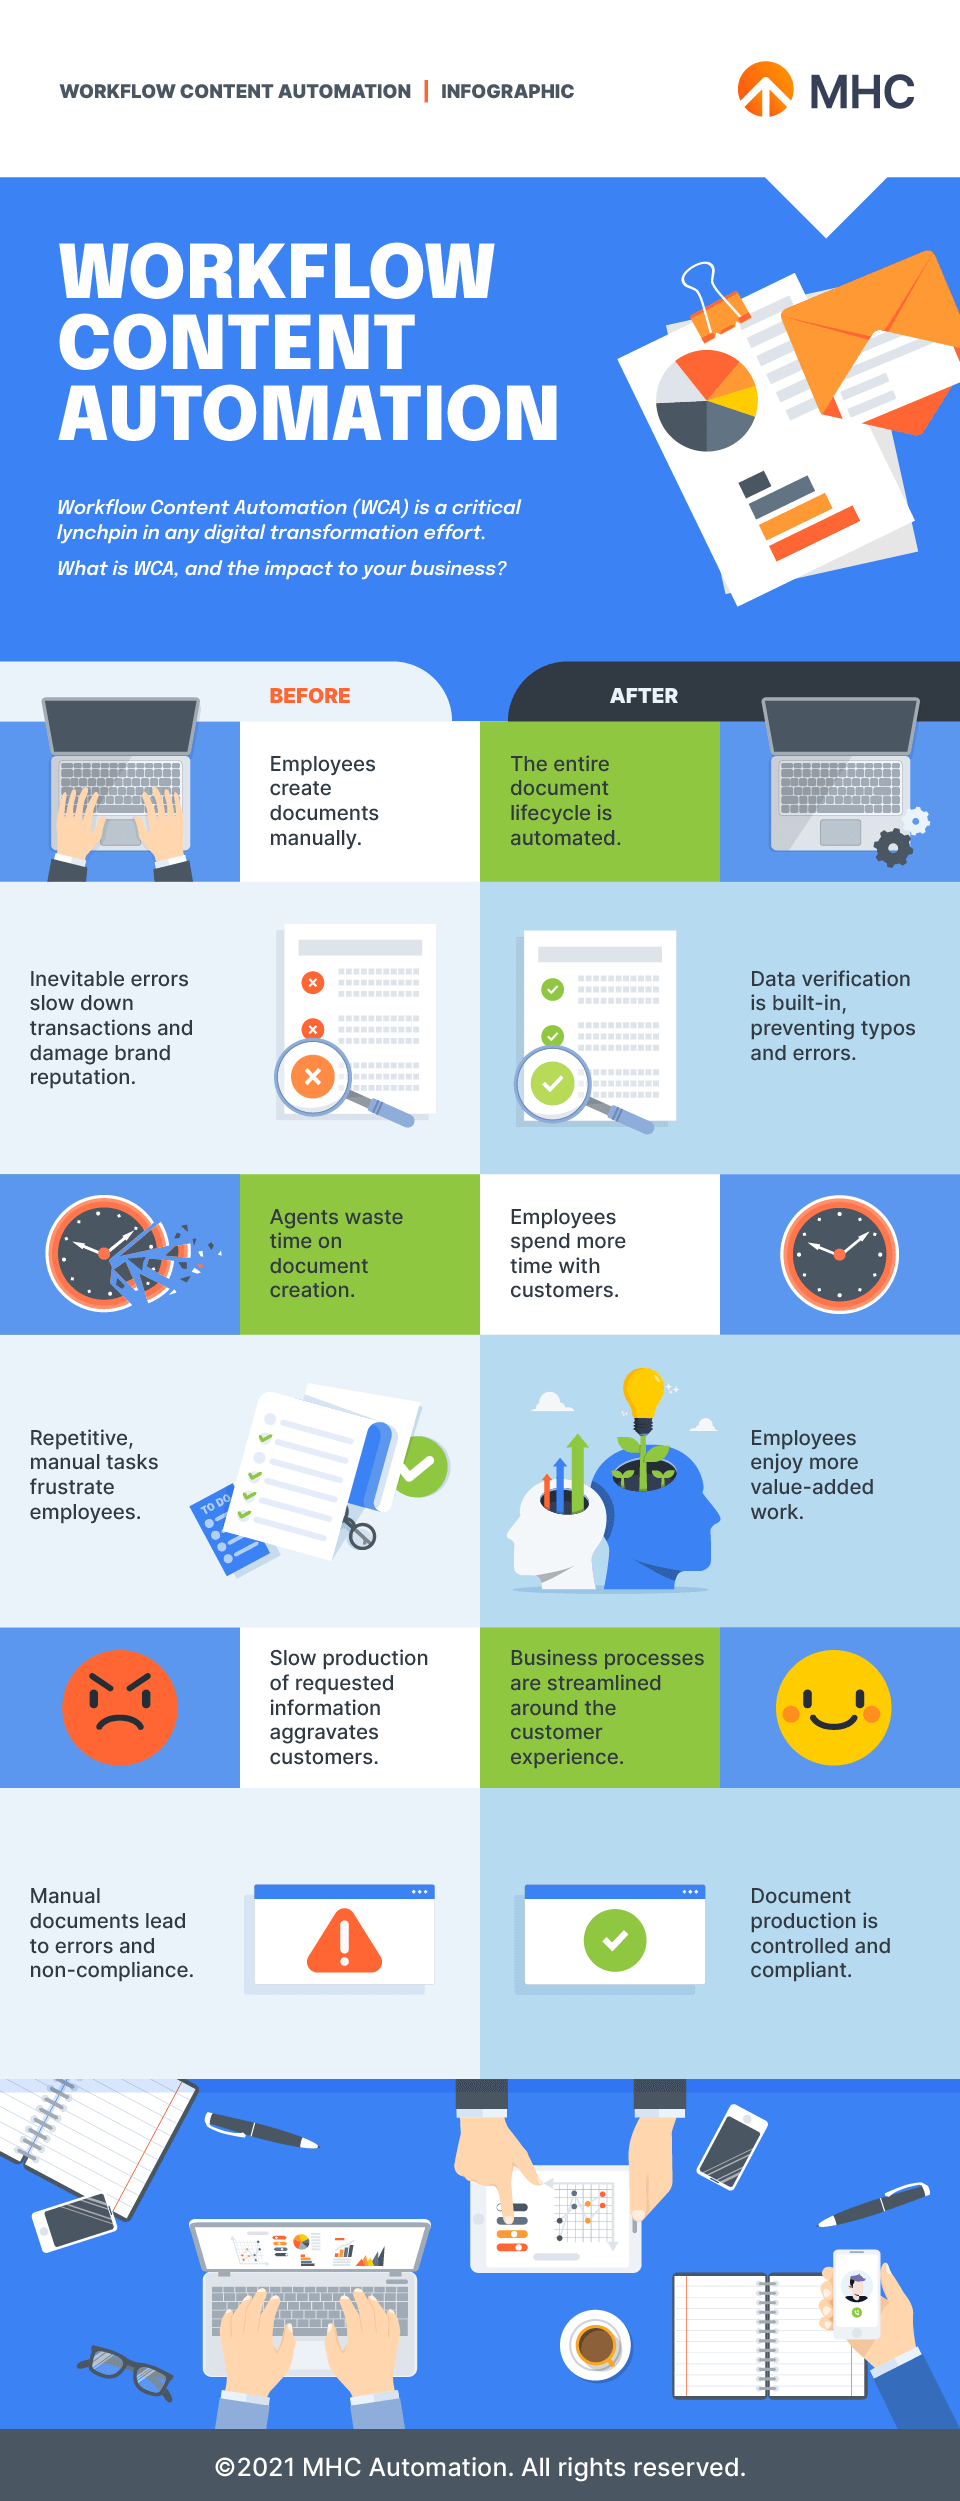 Workflow Content Automation infographic